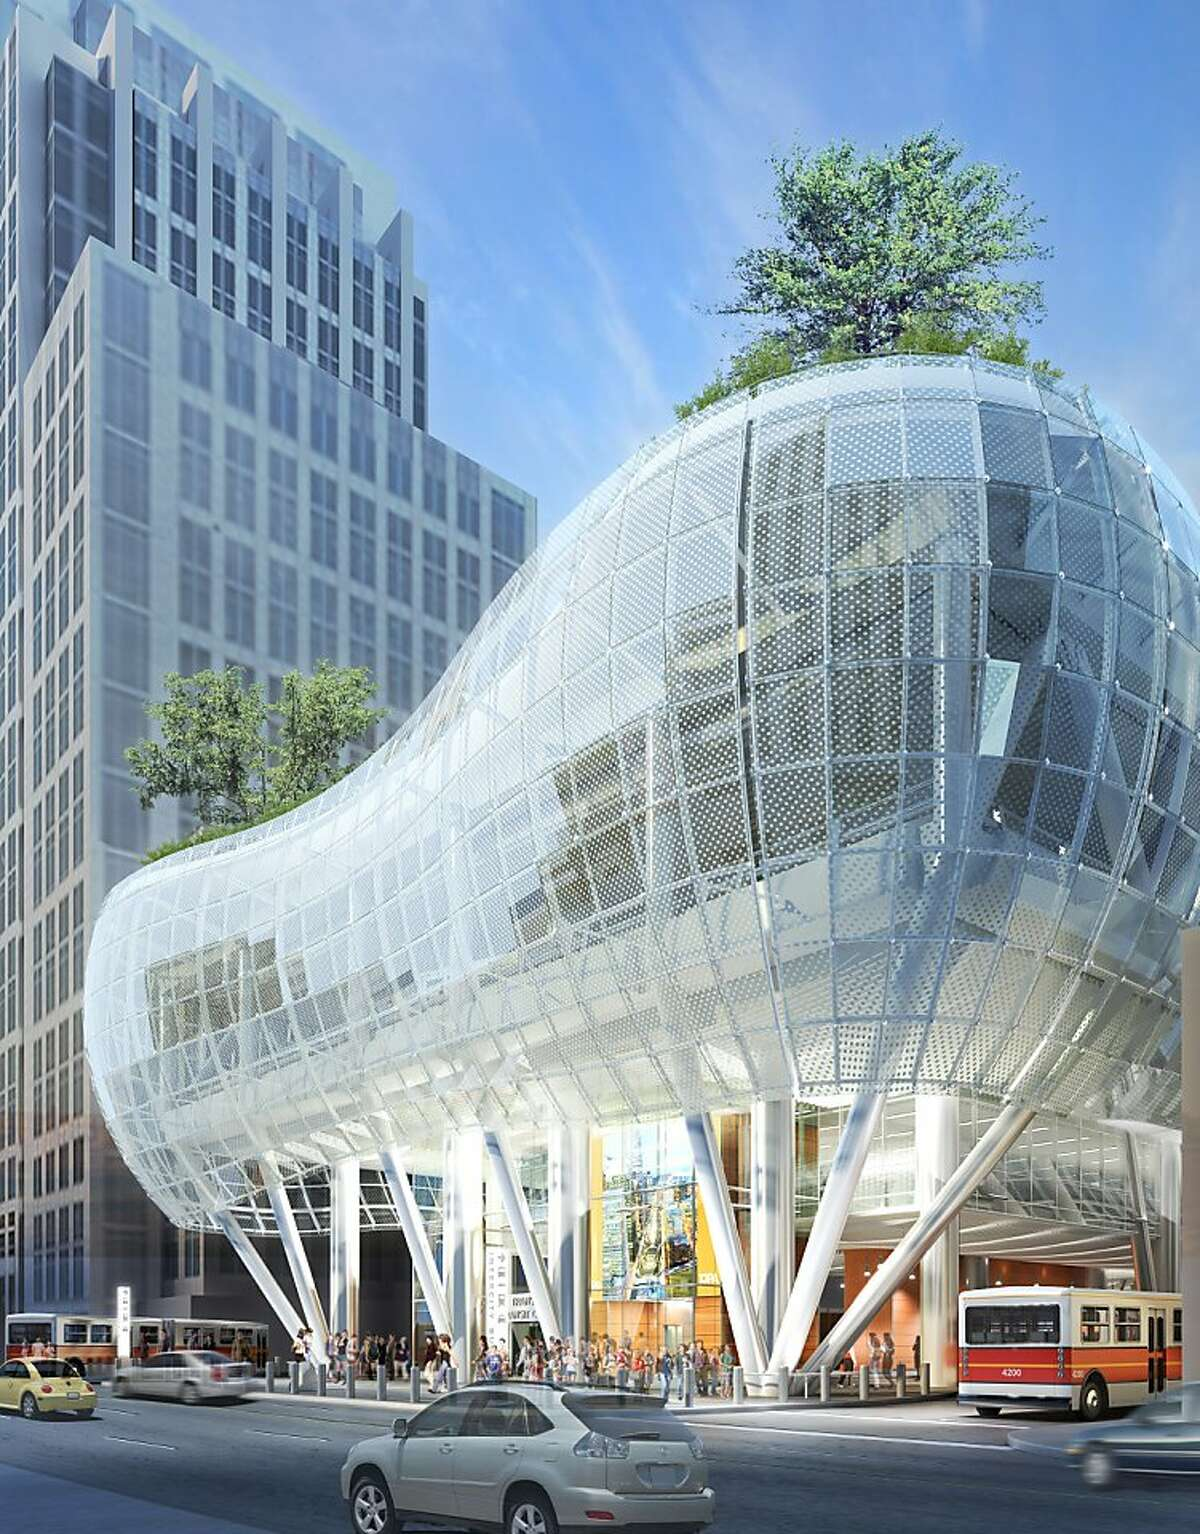 The 2010 design of the new Transbay Transit Center included an all glass skin. A see-through skin of aluminum is now being proposed to trim costs.